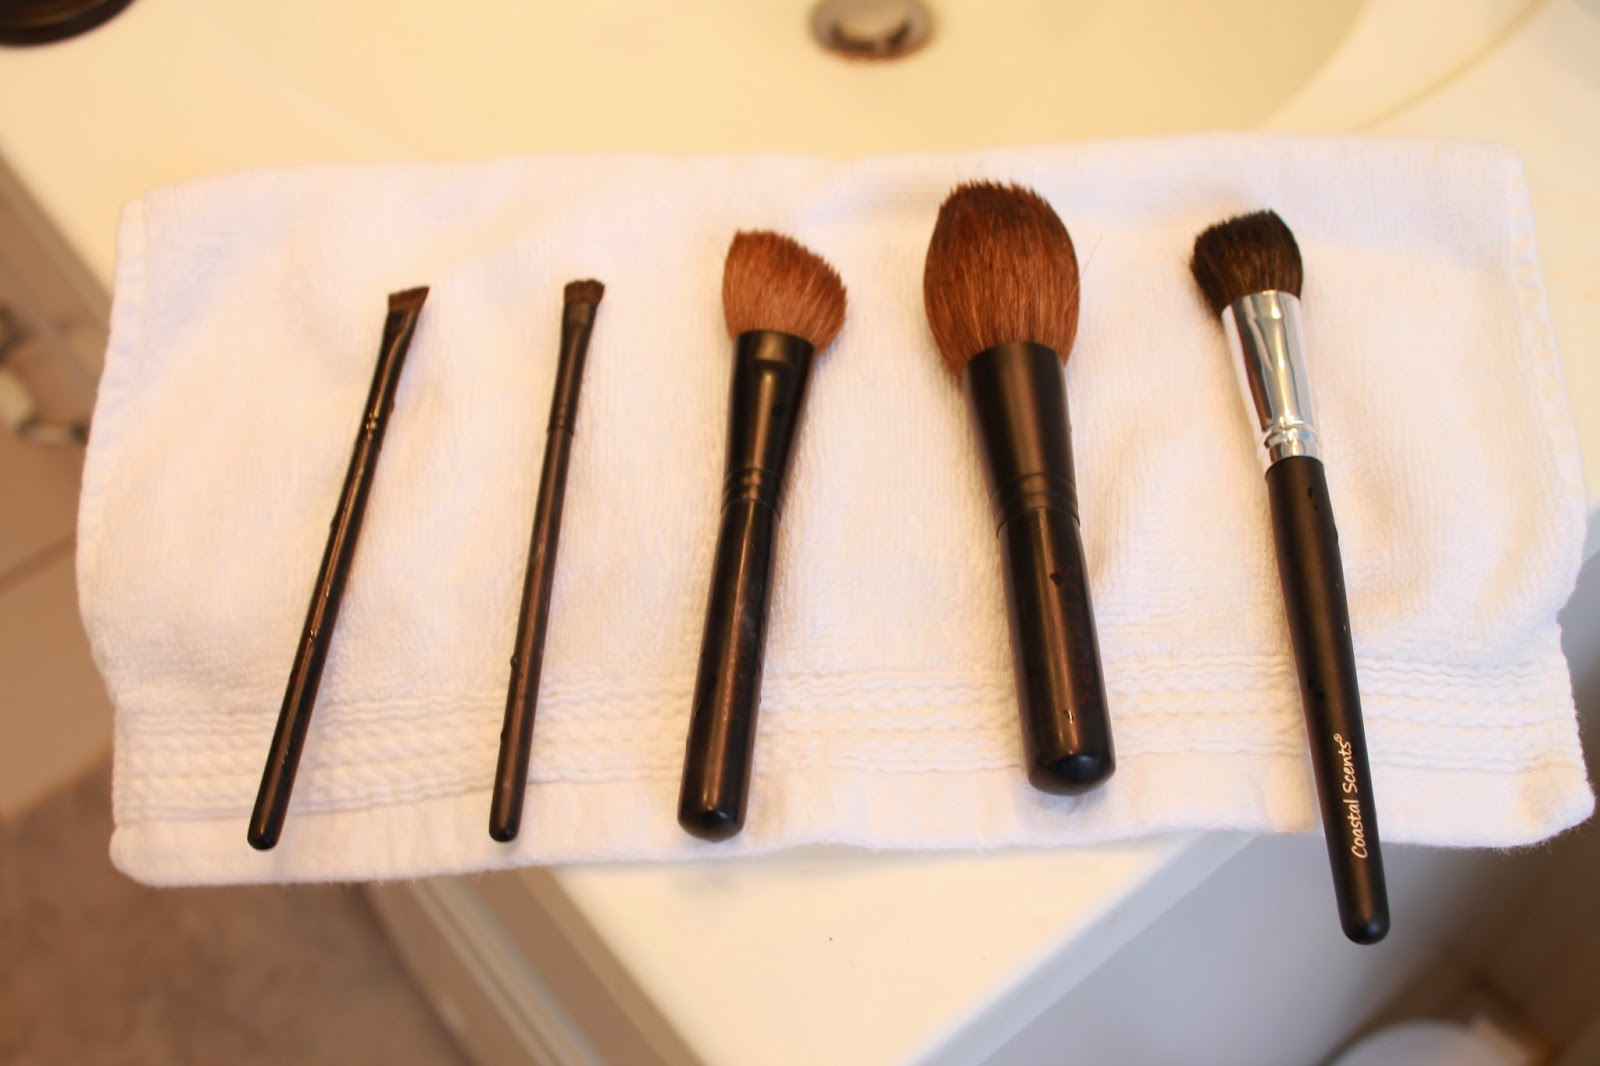 Cleaning Makeup Brushes | Feathers and Stripes